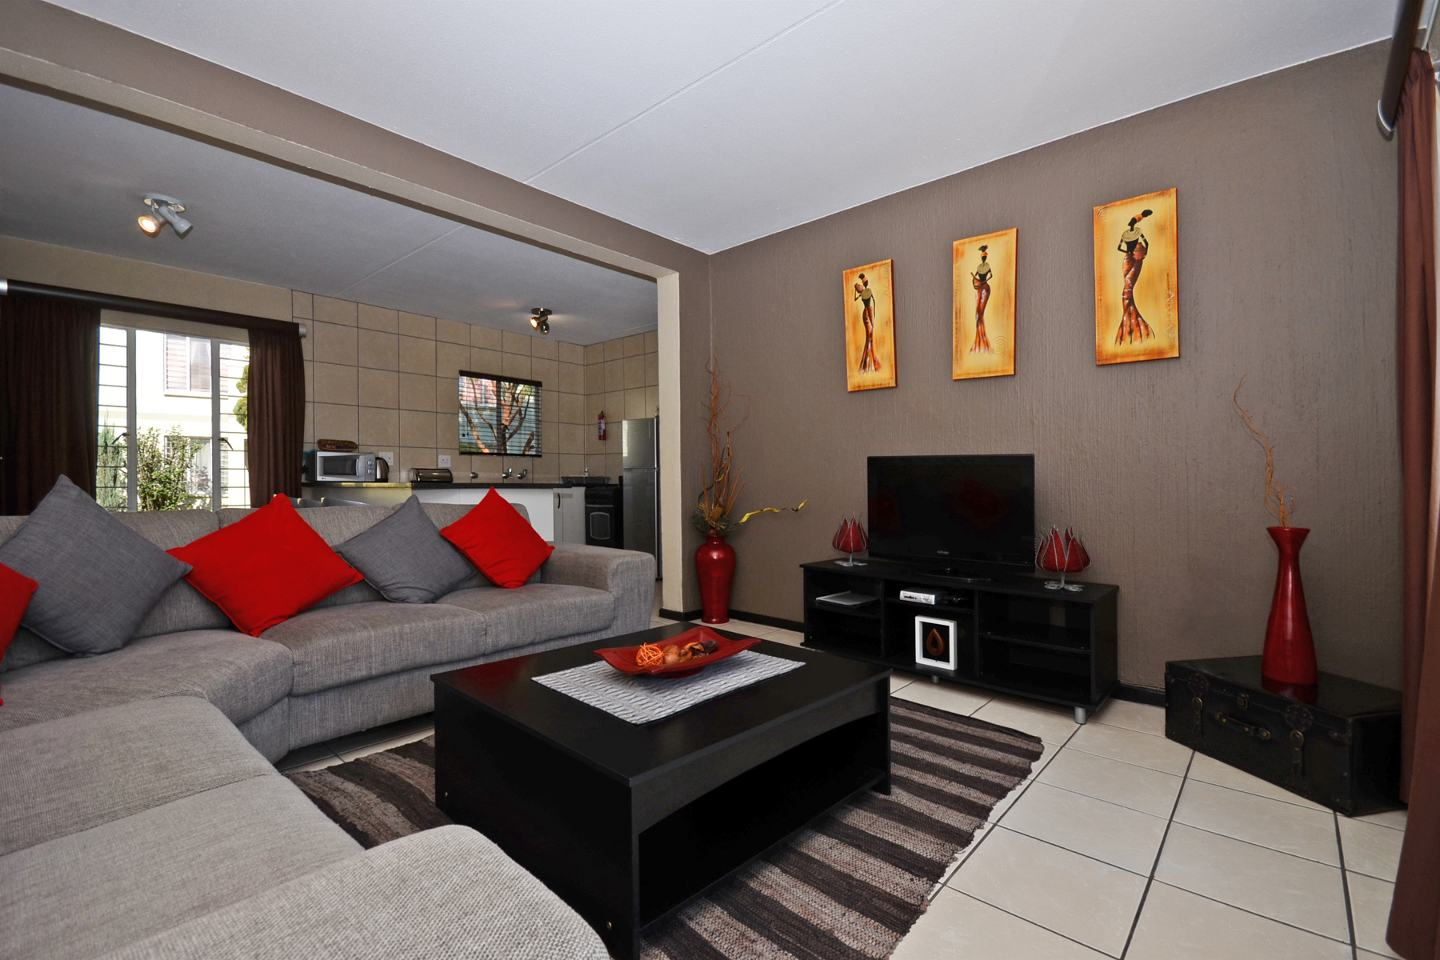 Jozi Apartments - Royal View Units, Johannesburg, South Africa